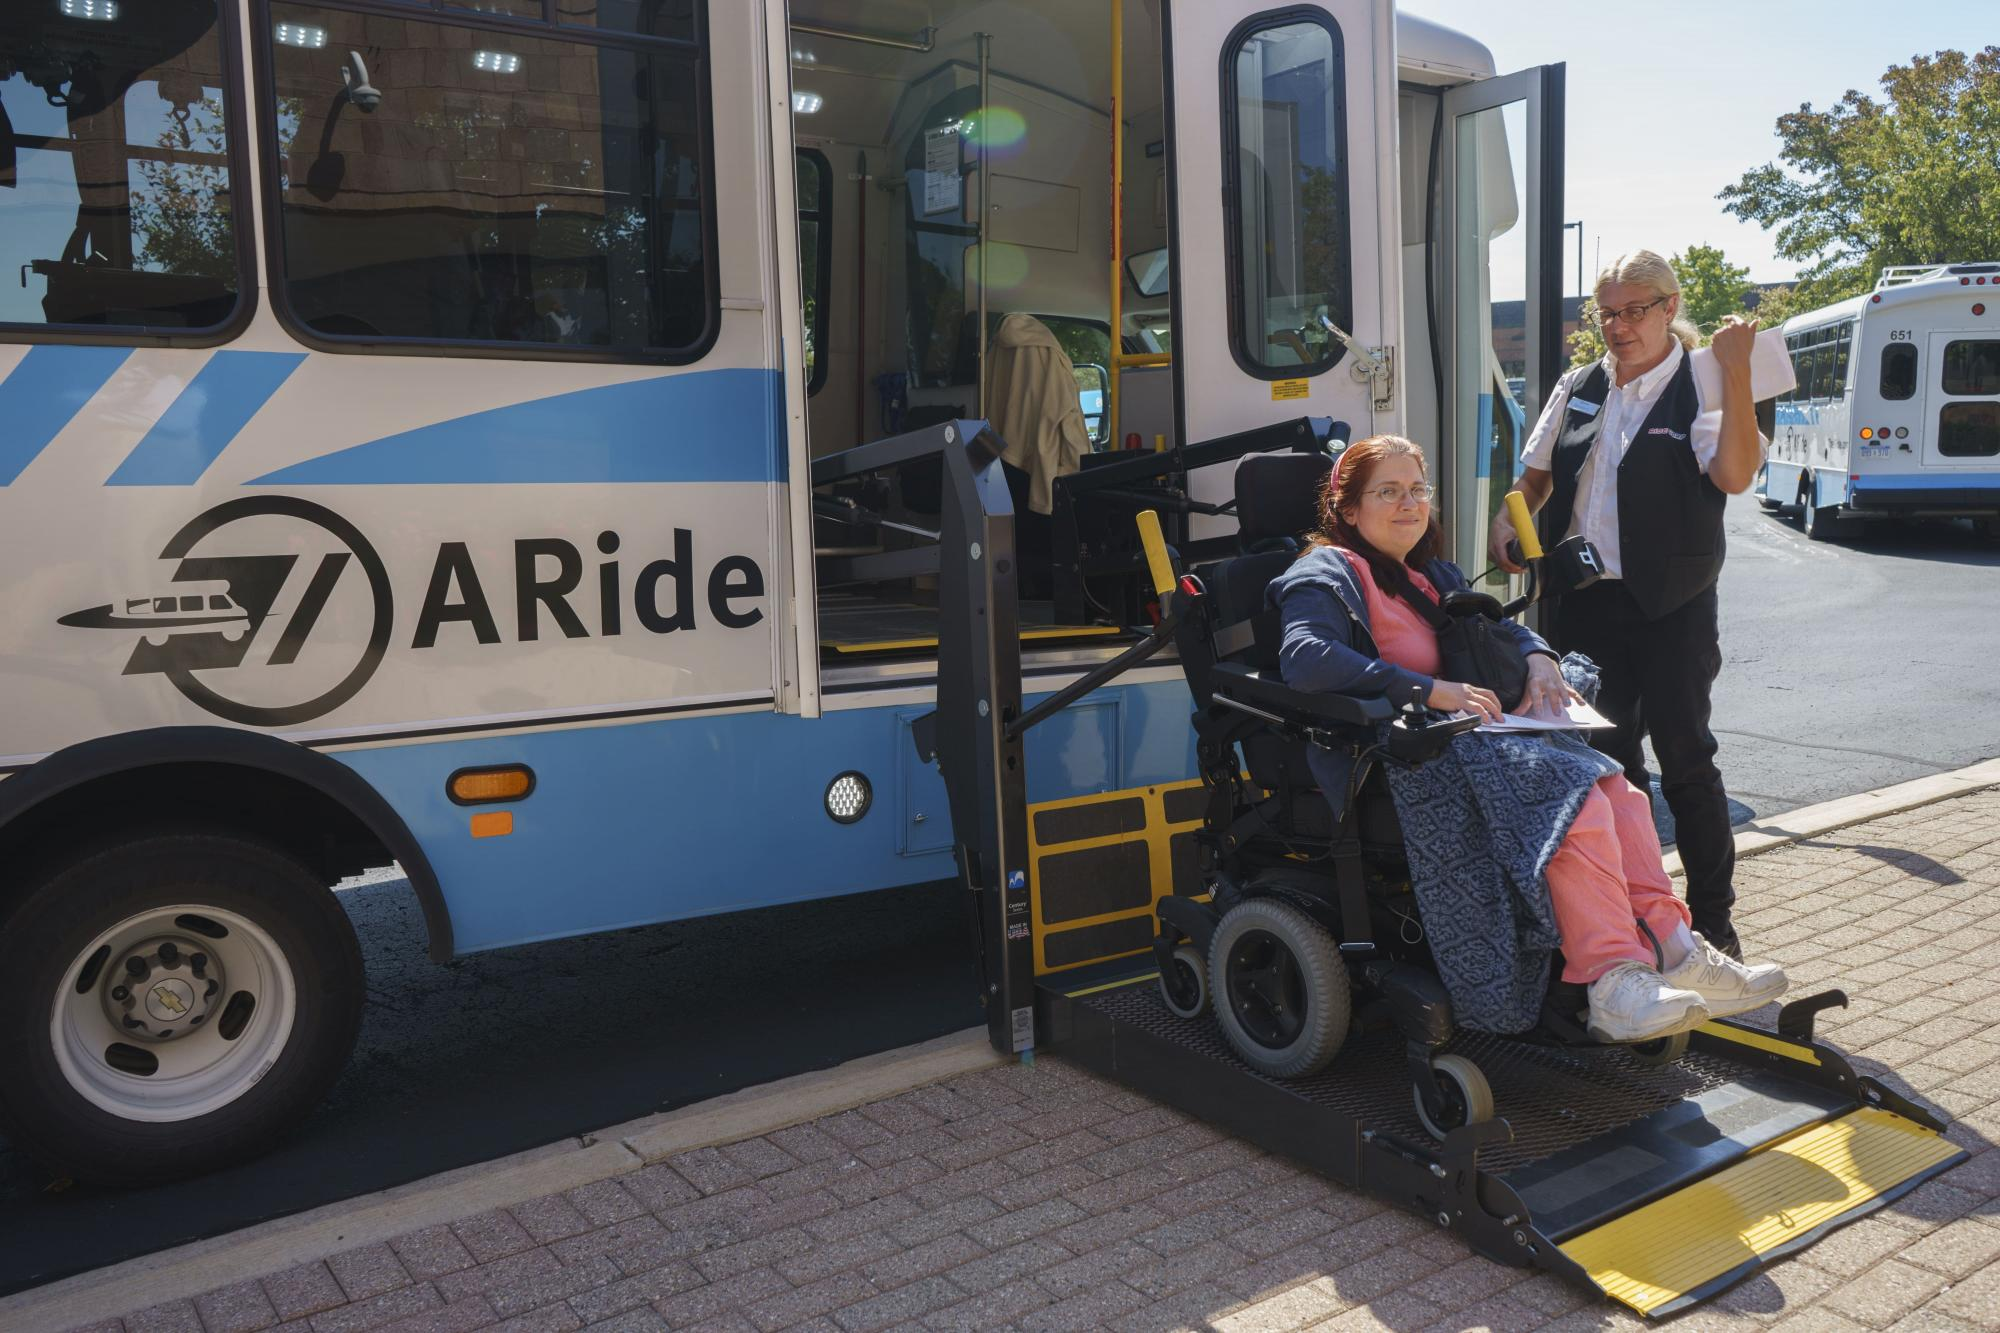 A woman has help boarding the A-Ride bus with her wheelchair.